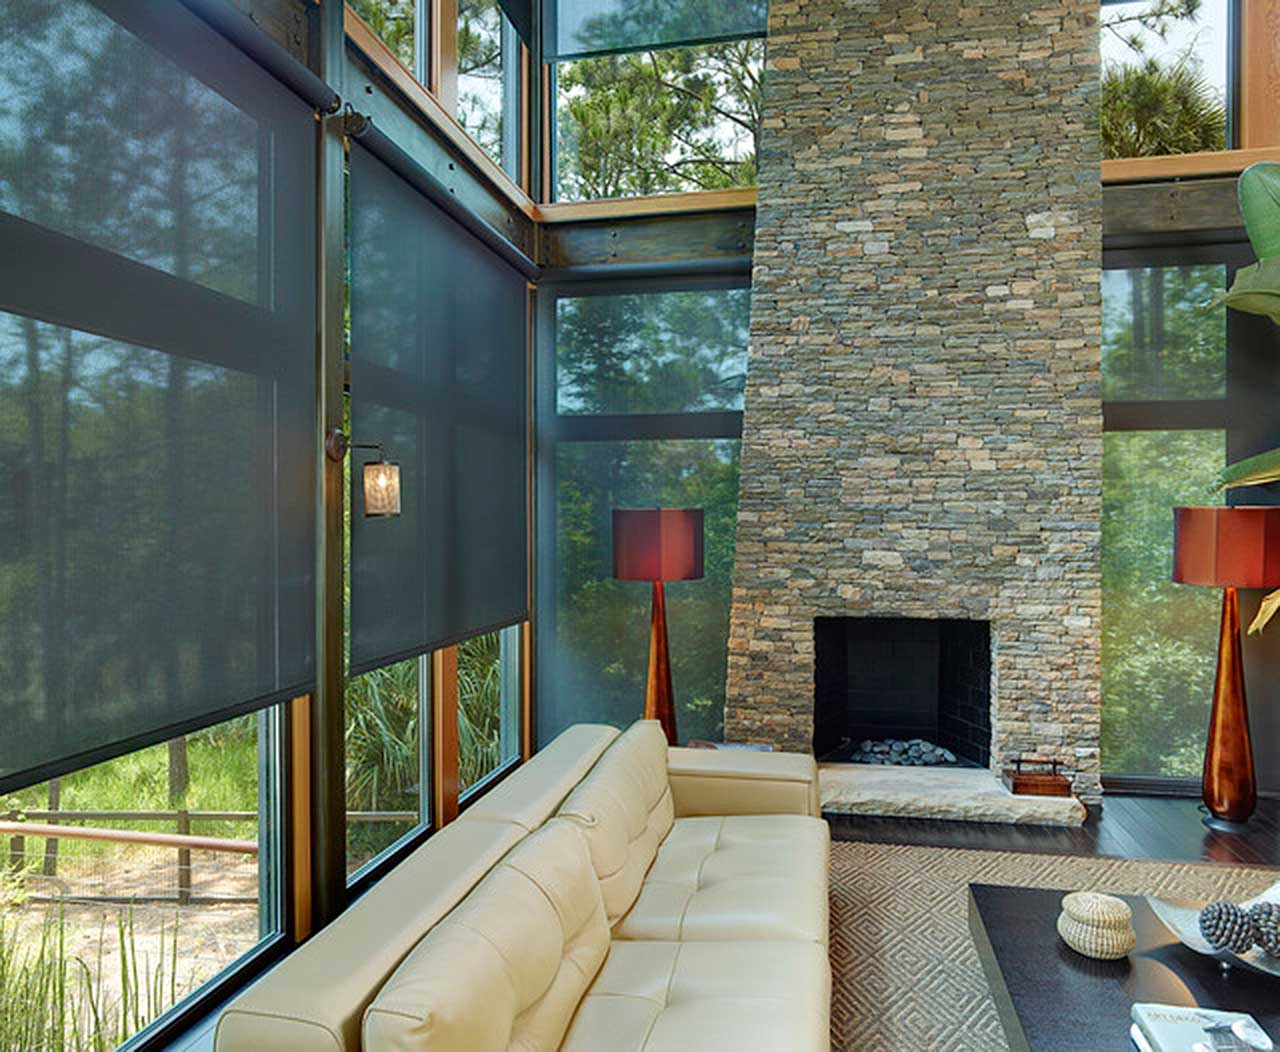 Roller Shades with Floor to Ceiling Windows and Chimney